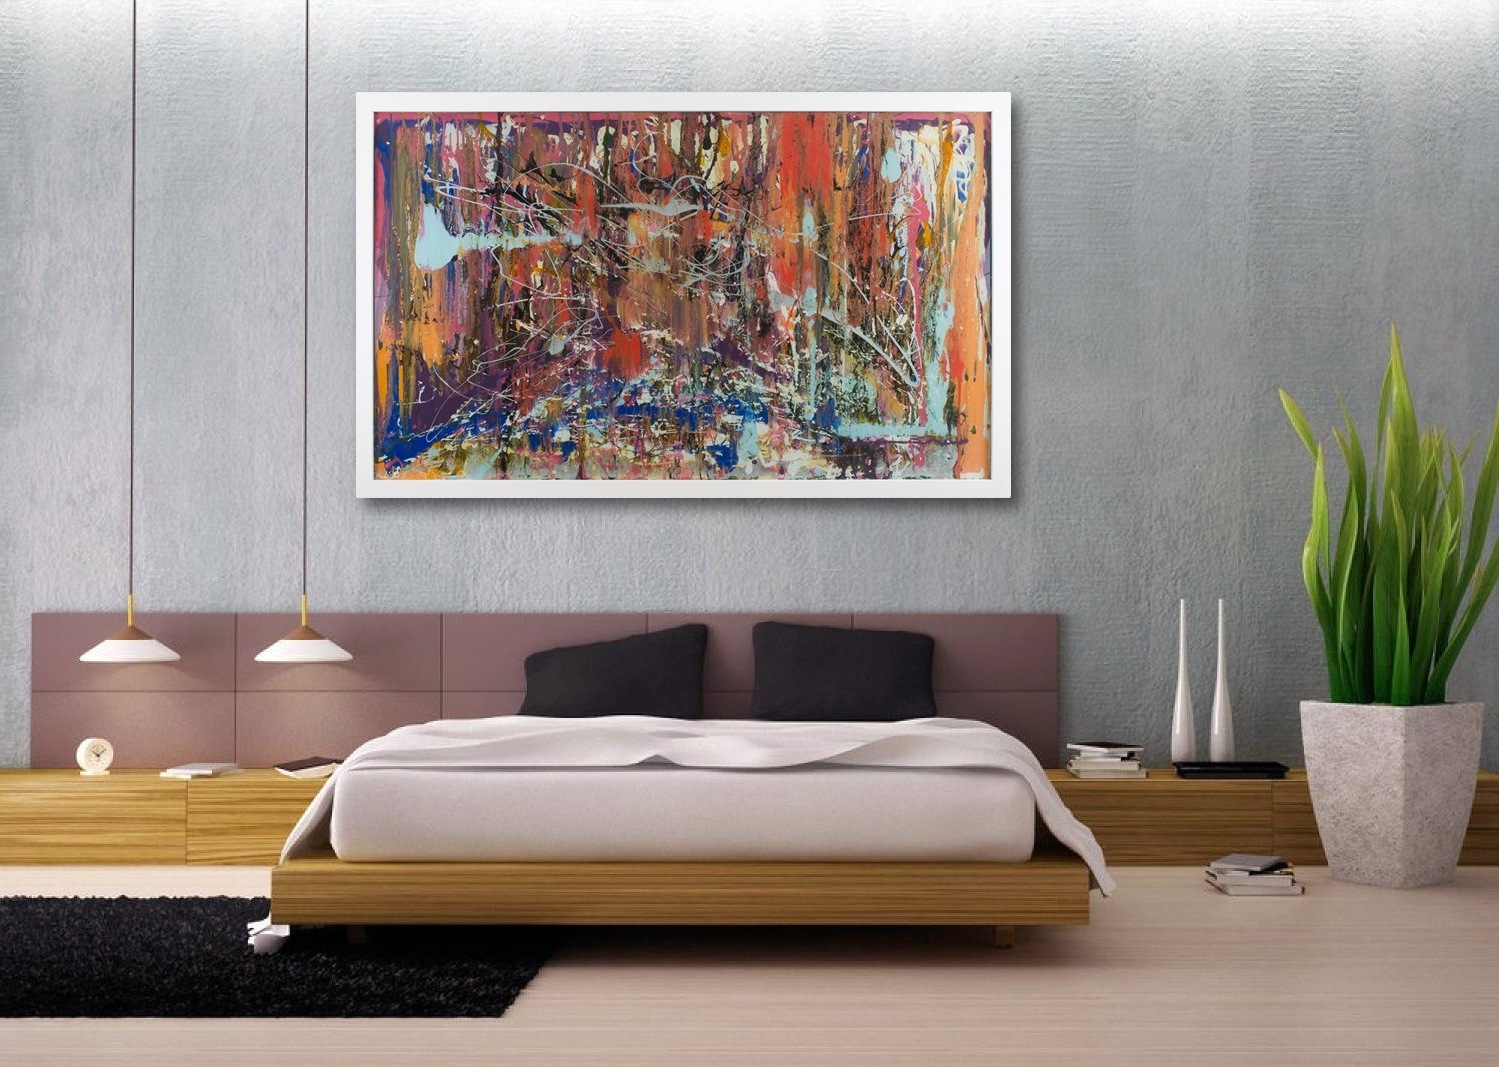 Modern Canvas Wall Art Inside Popular Expensive Large Canvas Wall Art Bedroom — Joanne Russo Homesjoanne (View 8 of 15)